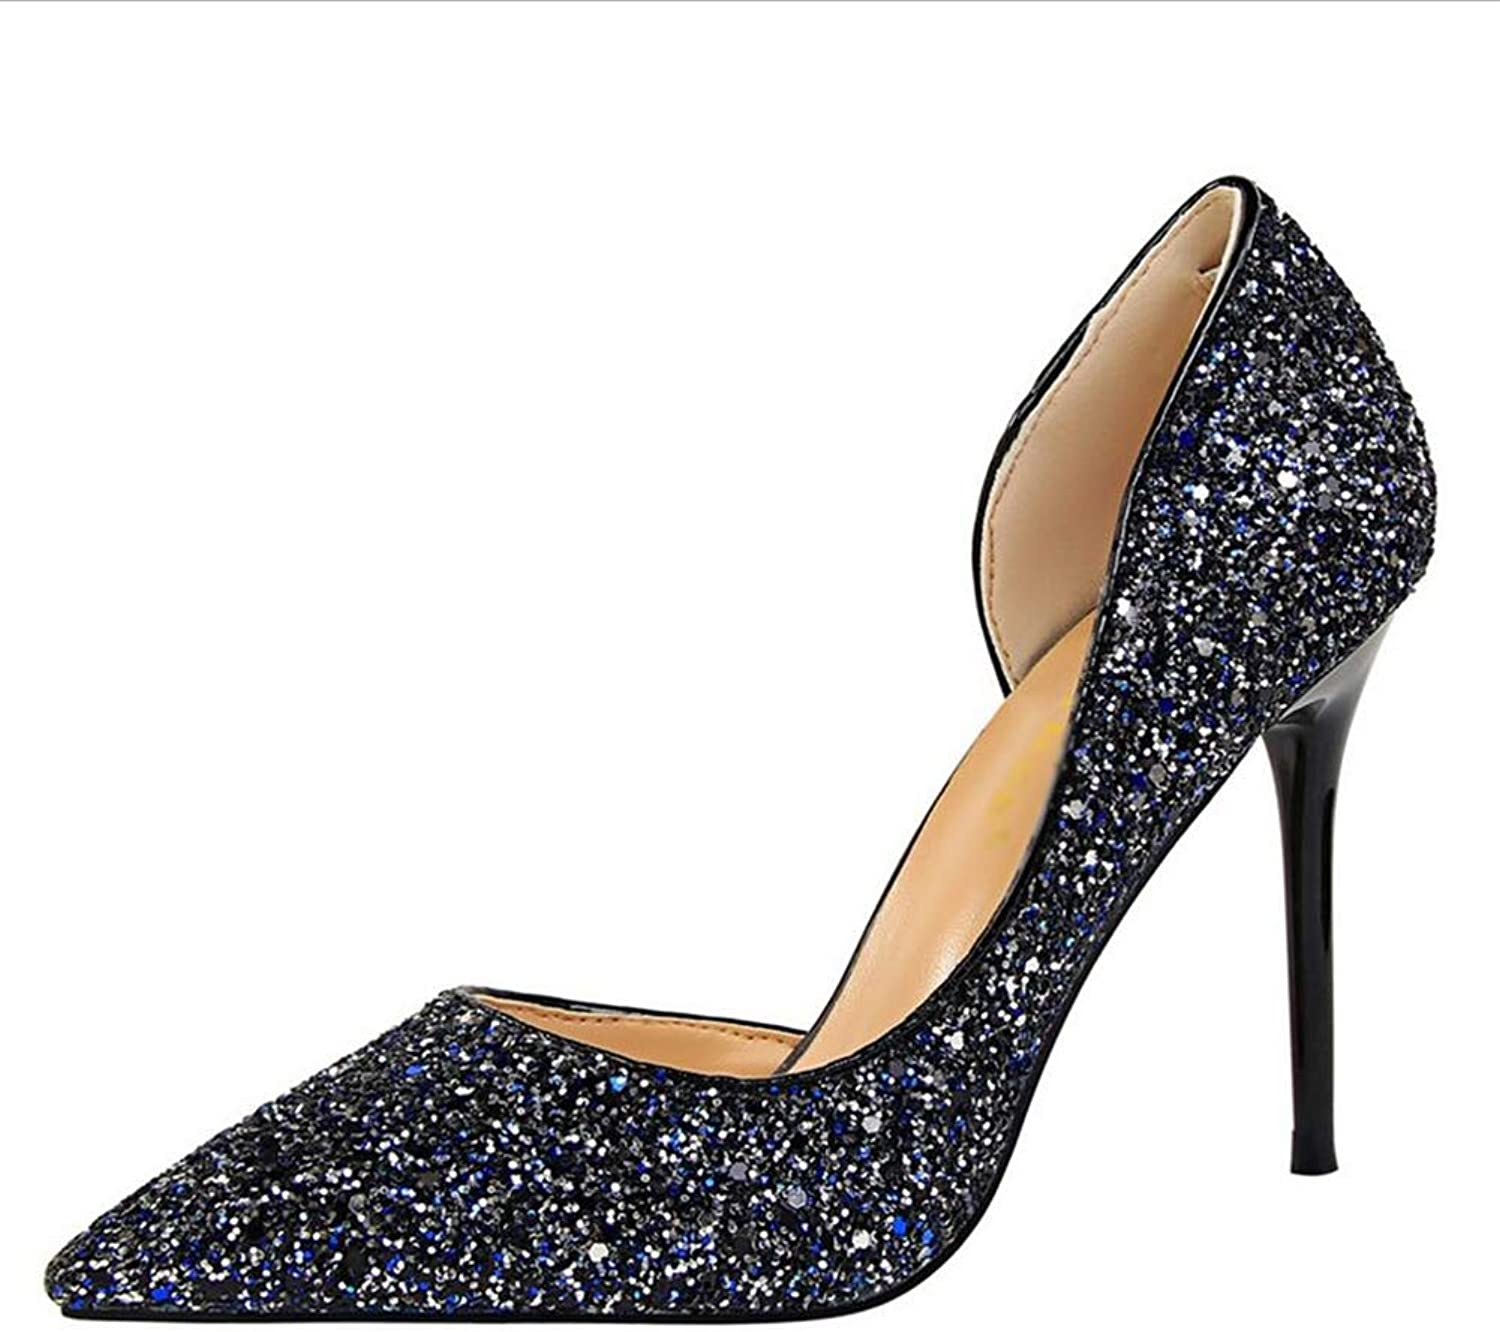 Court shoes Women's shoes shoes High Heel Western Style Sexy Nightclub Women's shoes Fine Heel Shallow Mouth Pointed Side Hollow Sequin shoes Haiming (color   bluee, Size   37)